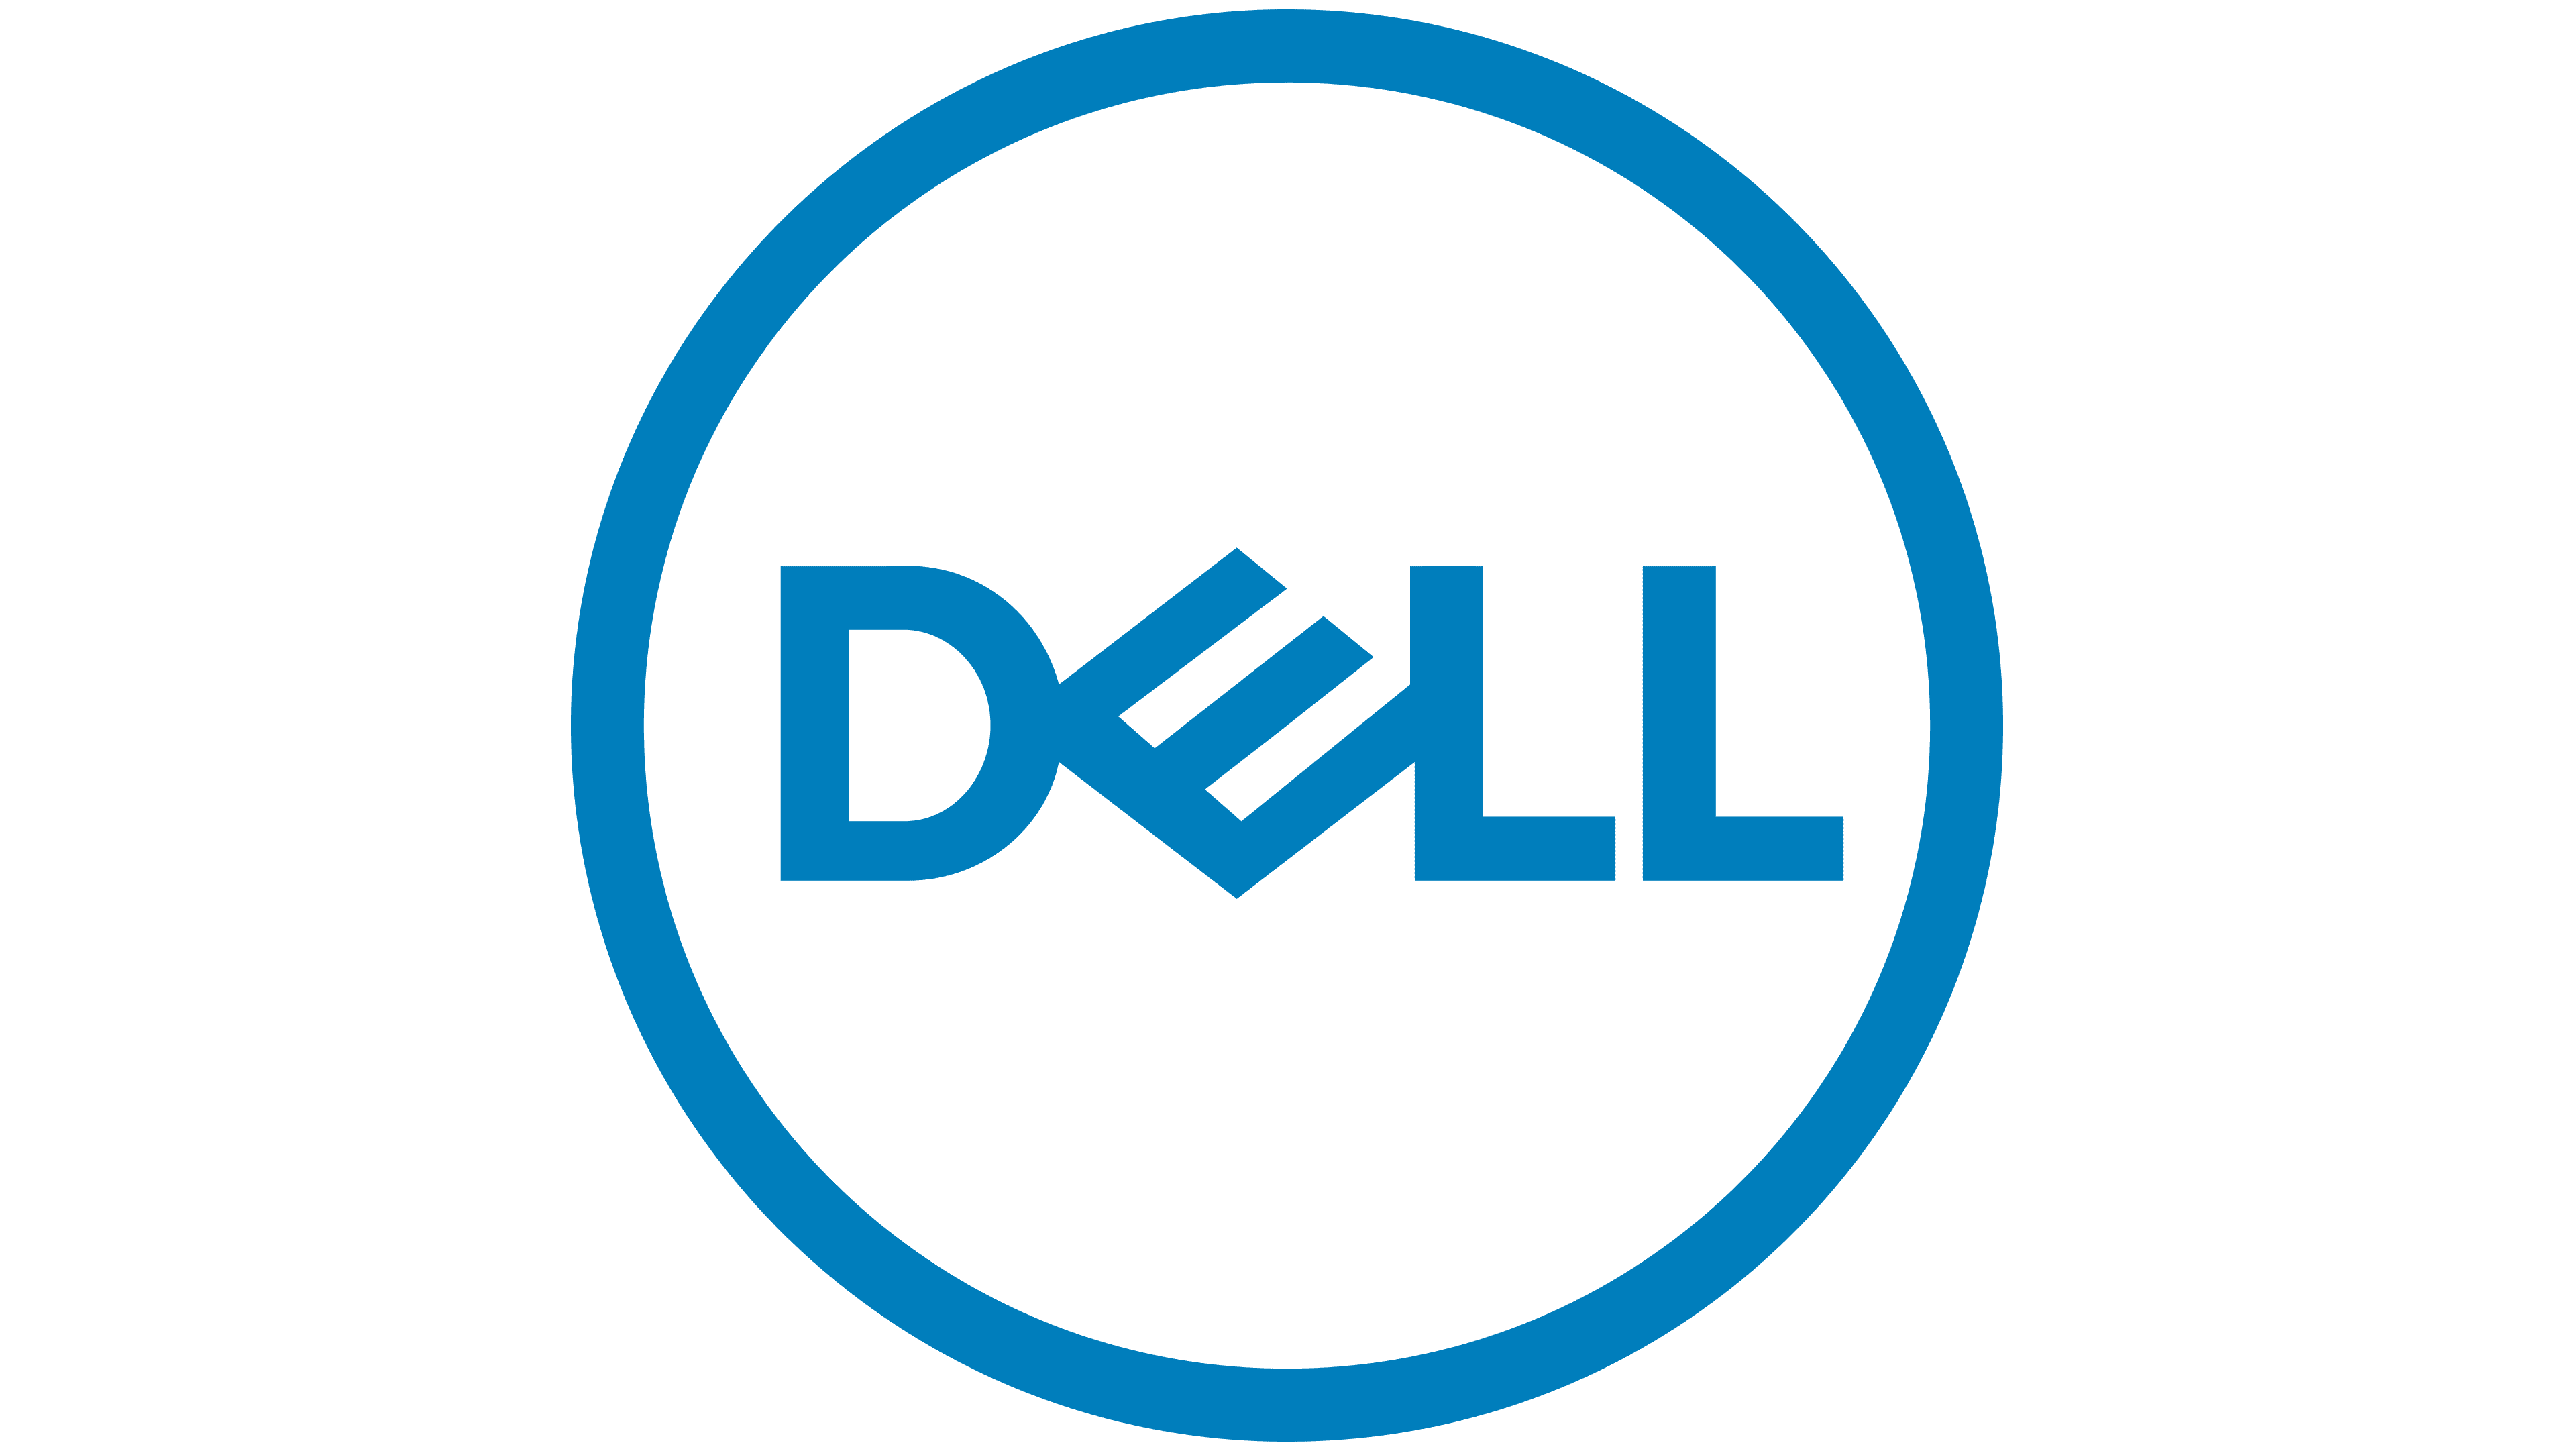 Dell Logo | The most famous brands and company logos in the world